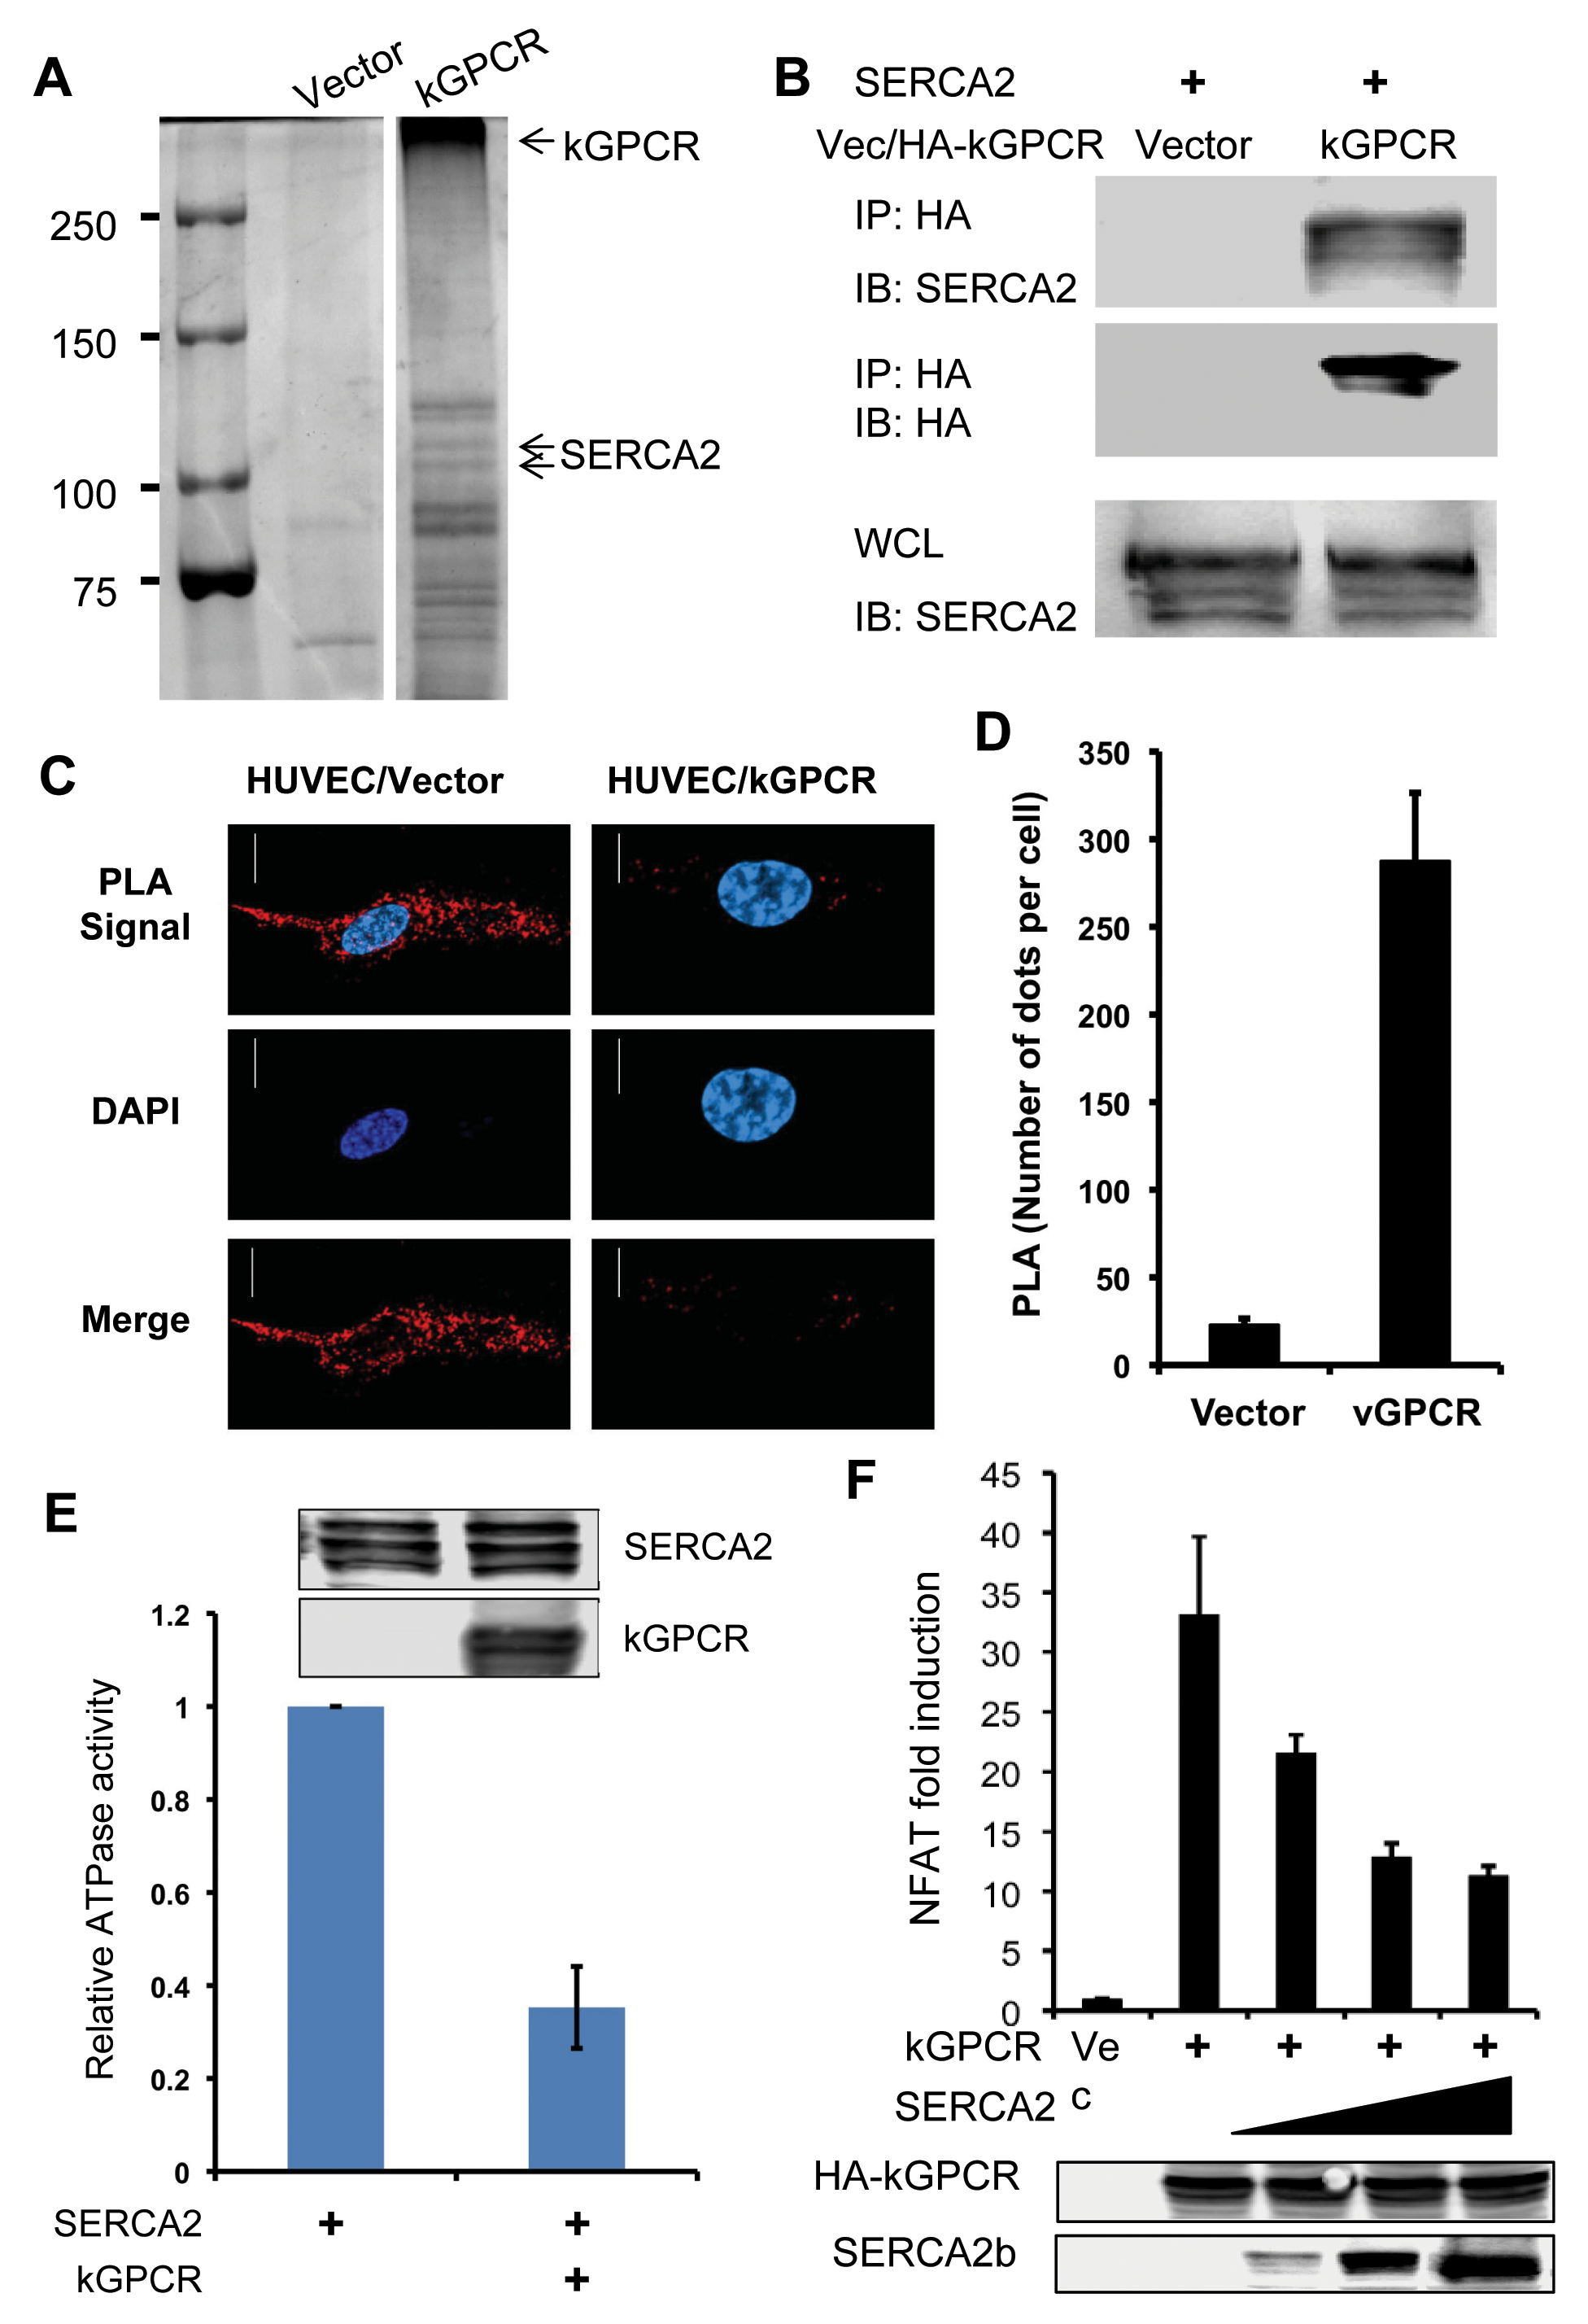 kGPCR interacts with SERCA2 and inhibits its ATPase activity.